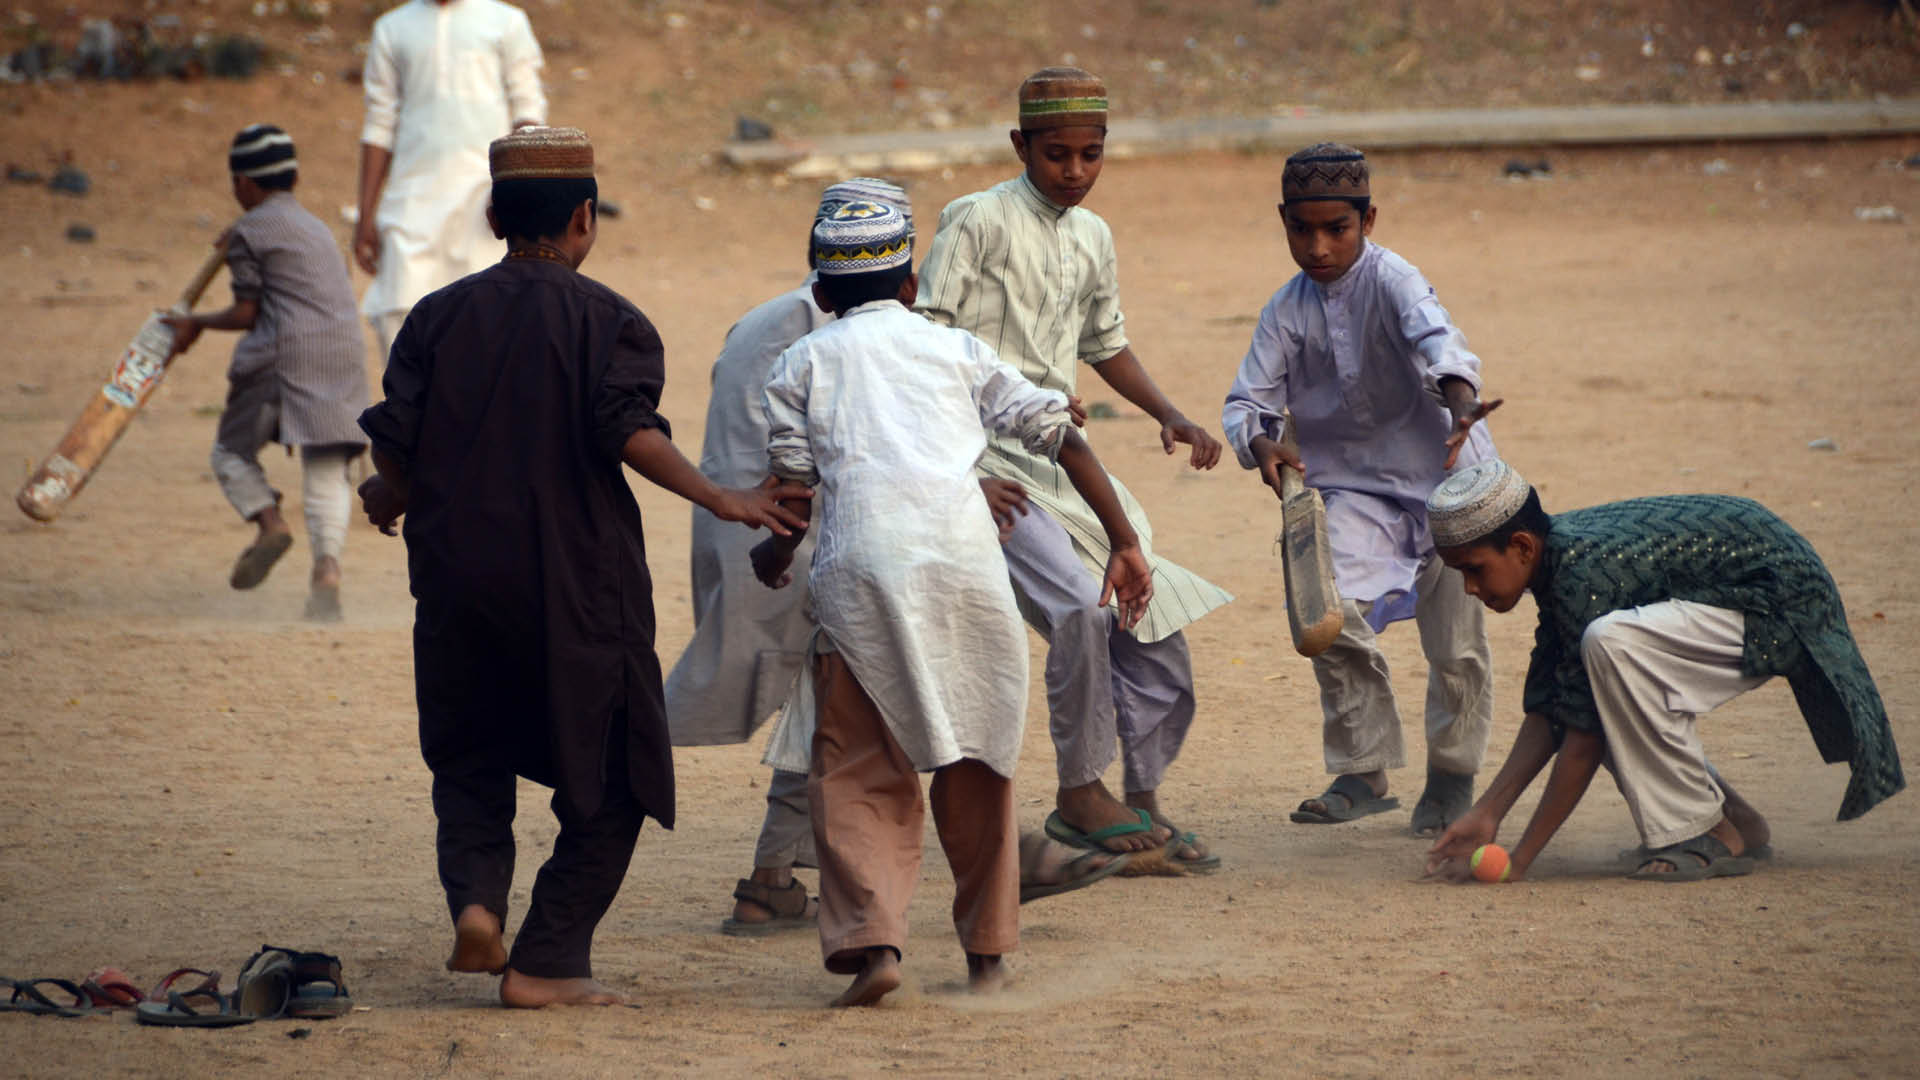 A gully cricket match in Hyderabad (Child's Right to Play is snatched in Covid-19 times)